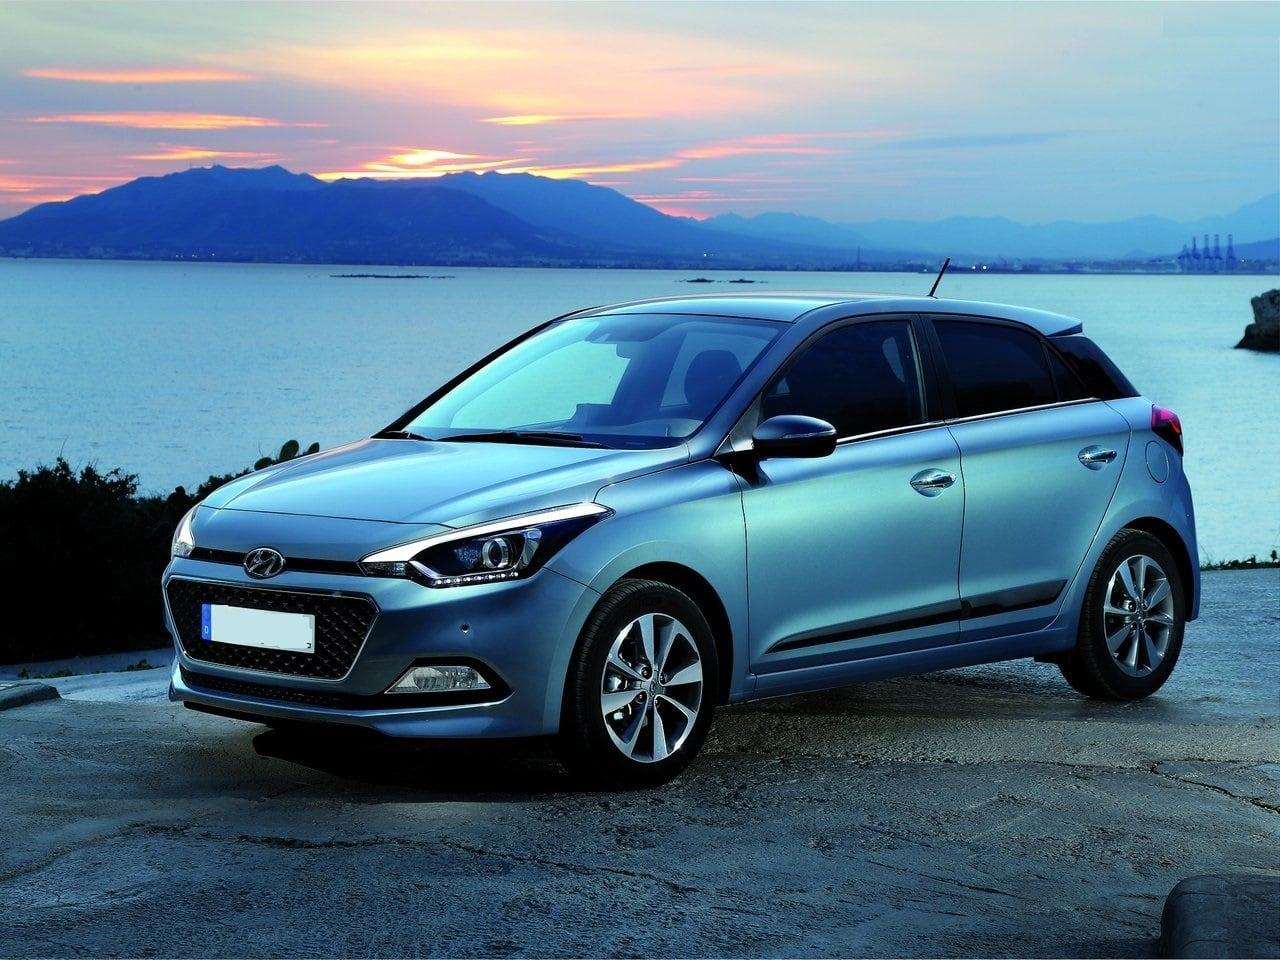 2017 hyundai elite i20 facelift price specifications for Hyundai i20 2015 interior